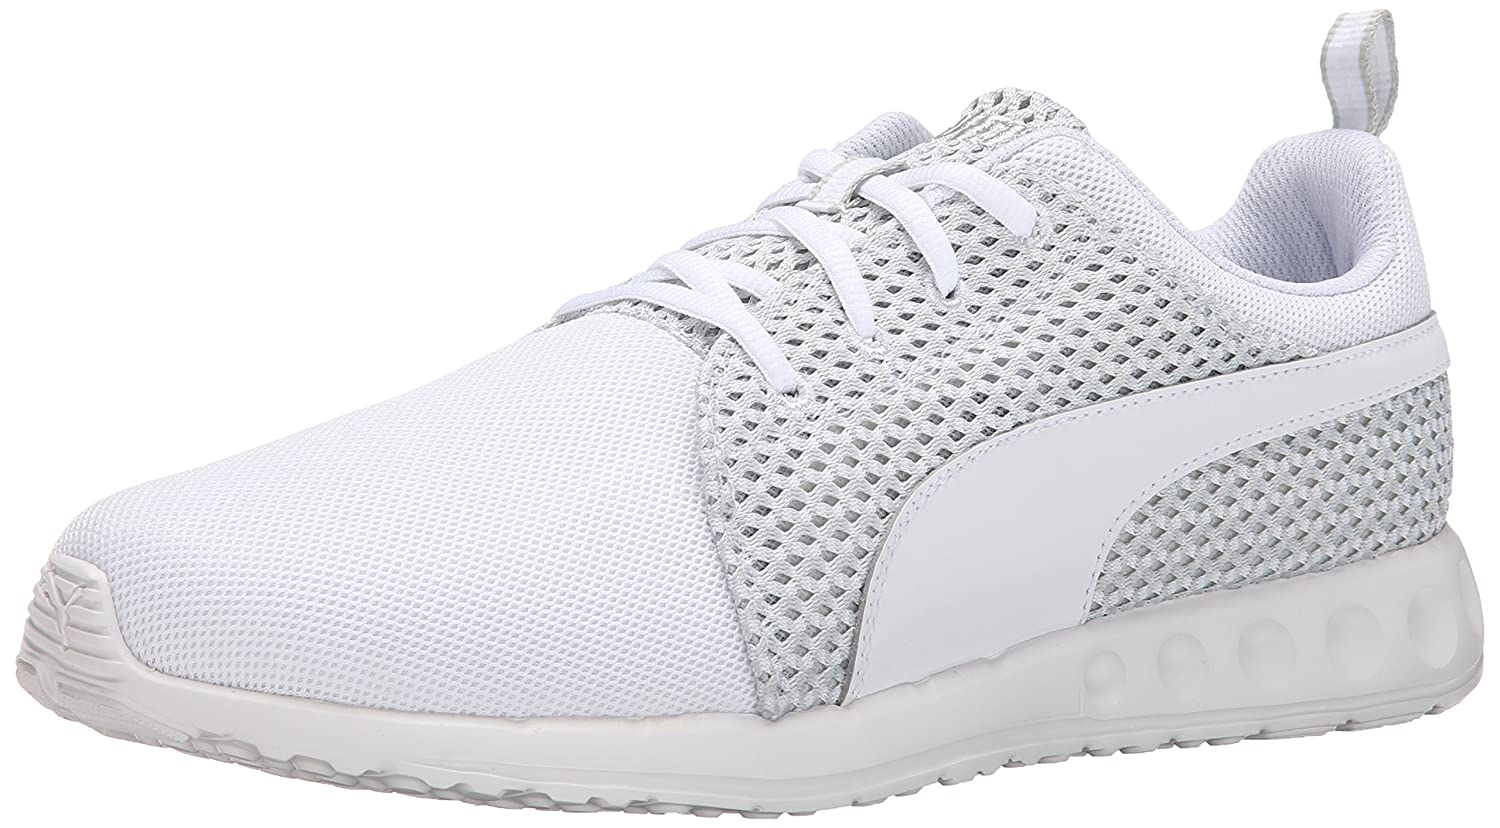 e2dd745a4d9344 Puma Womens Carson Runner Heather Running Shoes Bright Plasma-White Size  10  Amazon.in  Shoes   Handbags